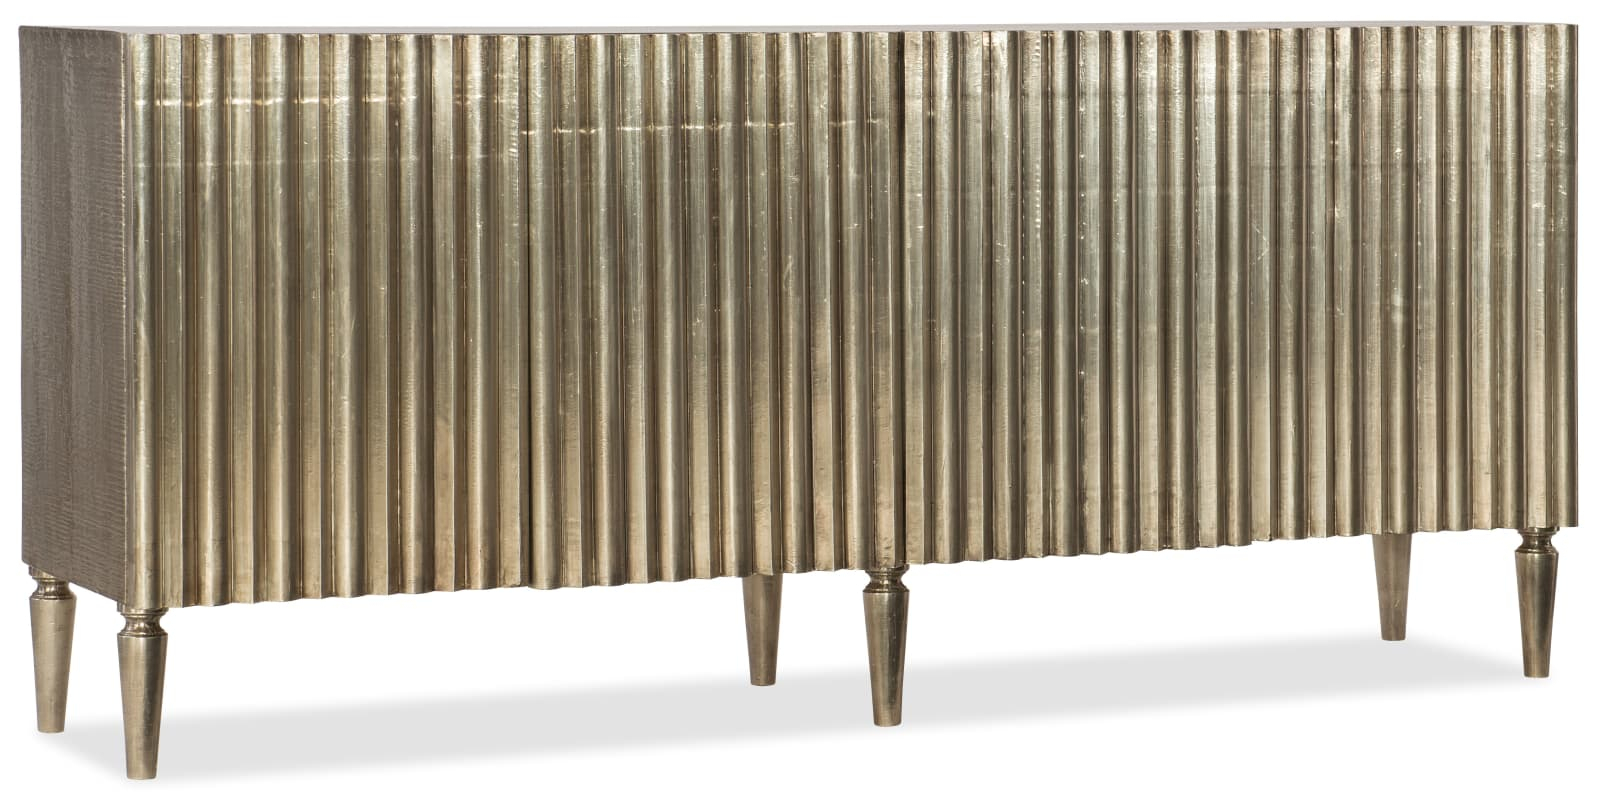 """Hooker Furniture 5637 85001 Slv 78"""" Wide Wood Sofa Table German Inside Gunmetal Perforated Brass Media Console Tables (View 18 of 30)"""